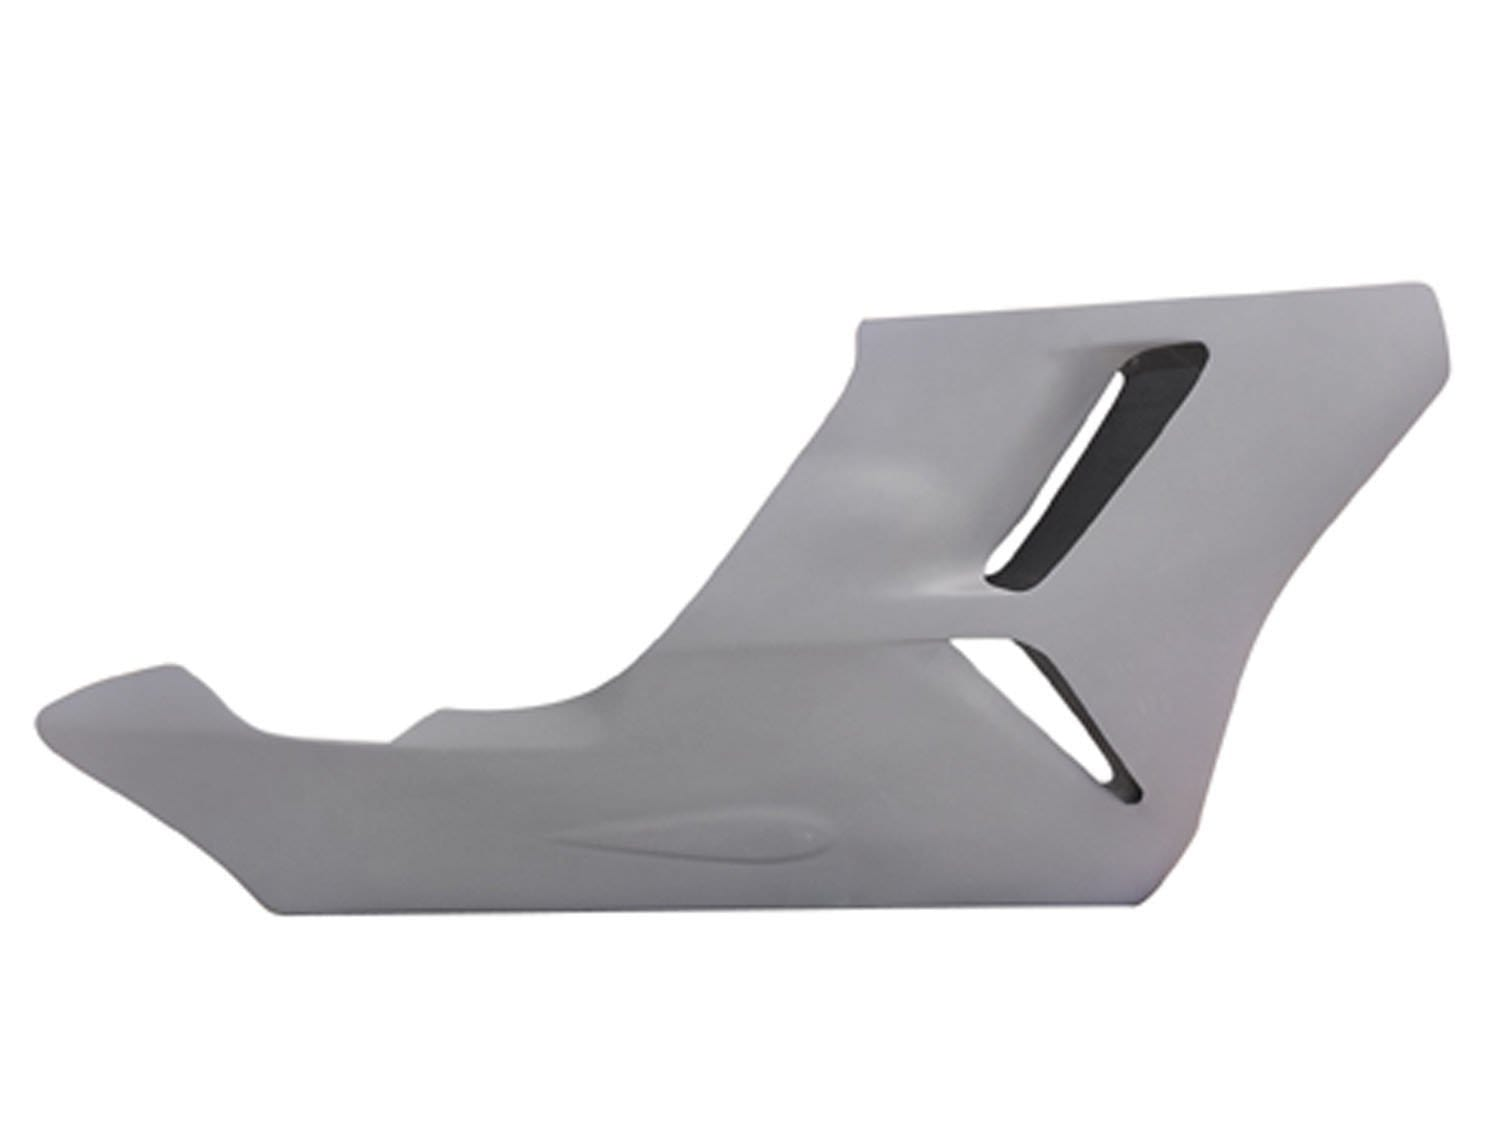 Honda CBR1000RR 2004-2005 Lower Fairing - Pro Series - Woodcraft Technologies - Motorcycle Parts